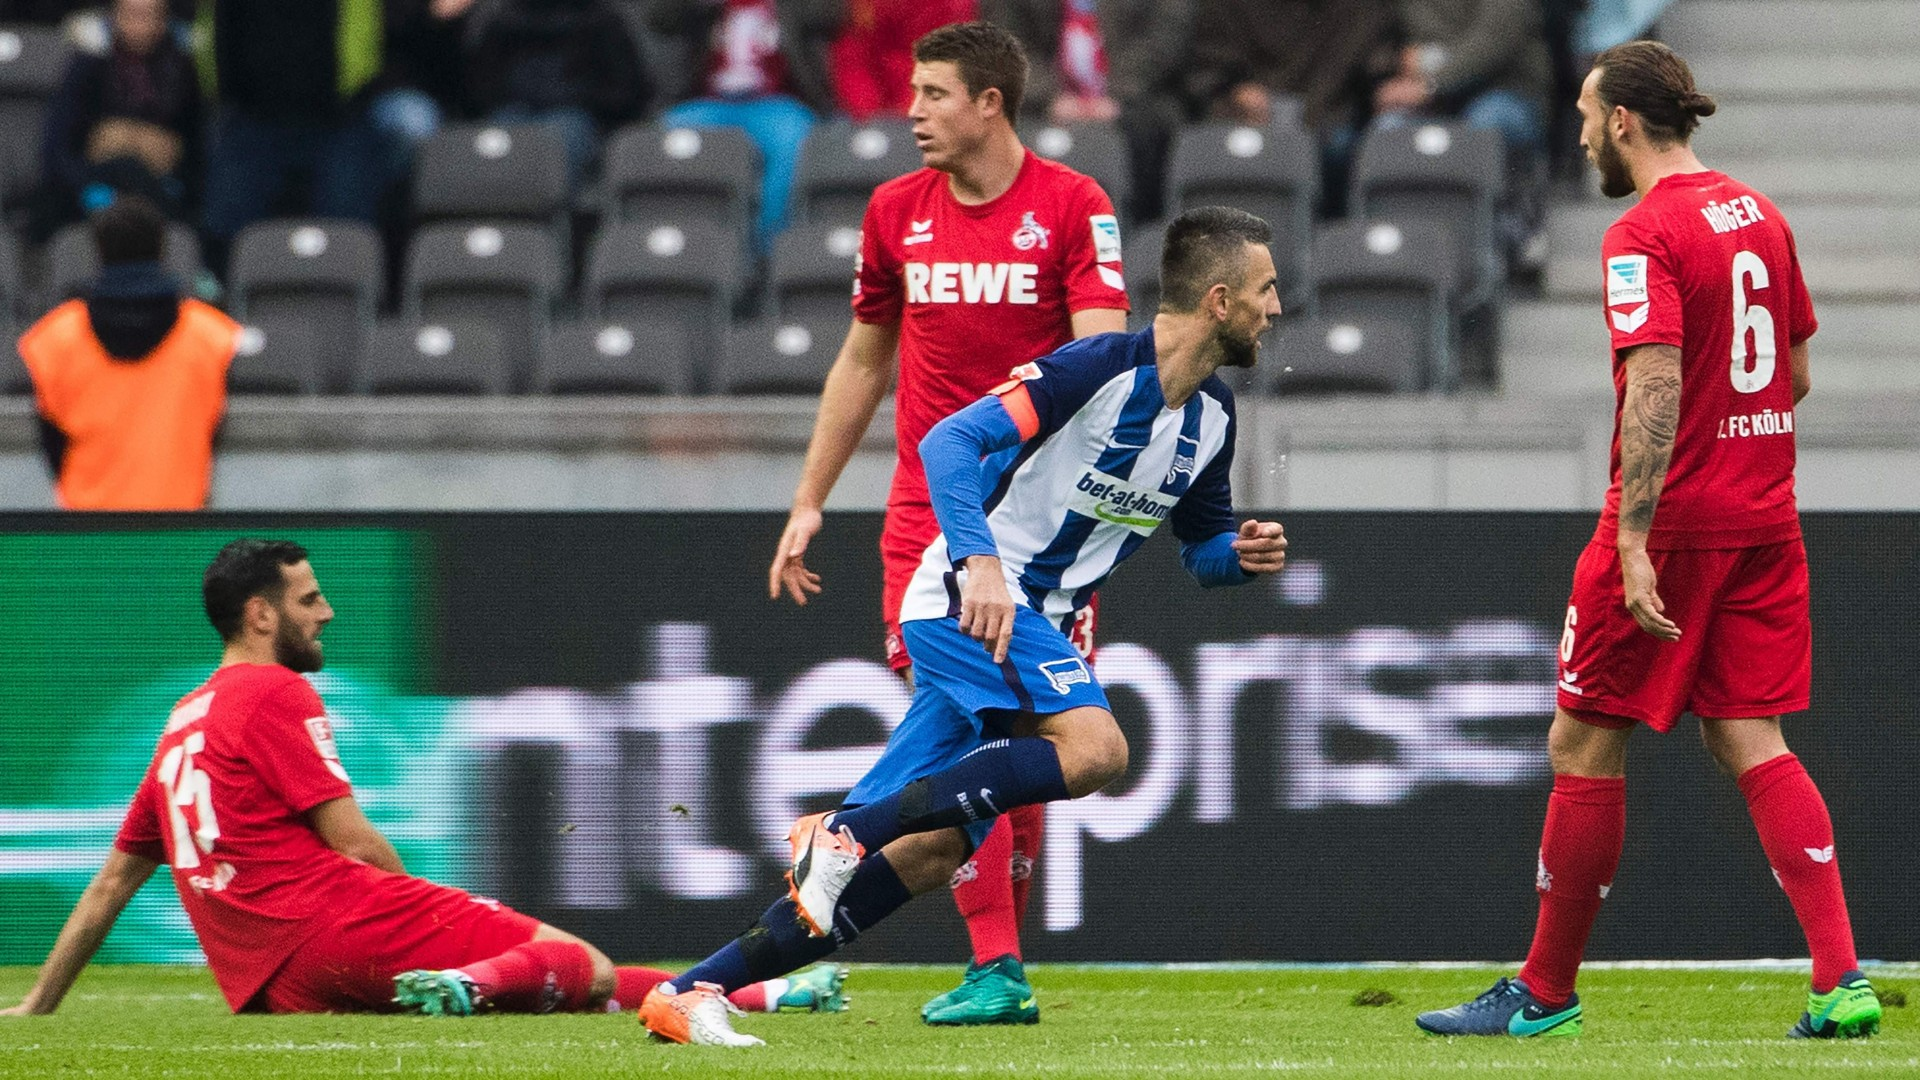 ibisevic hertha koln